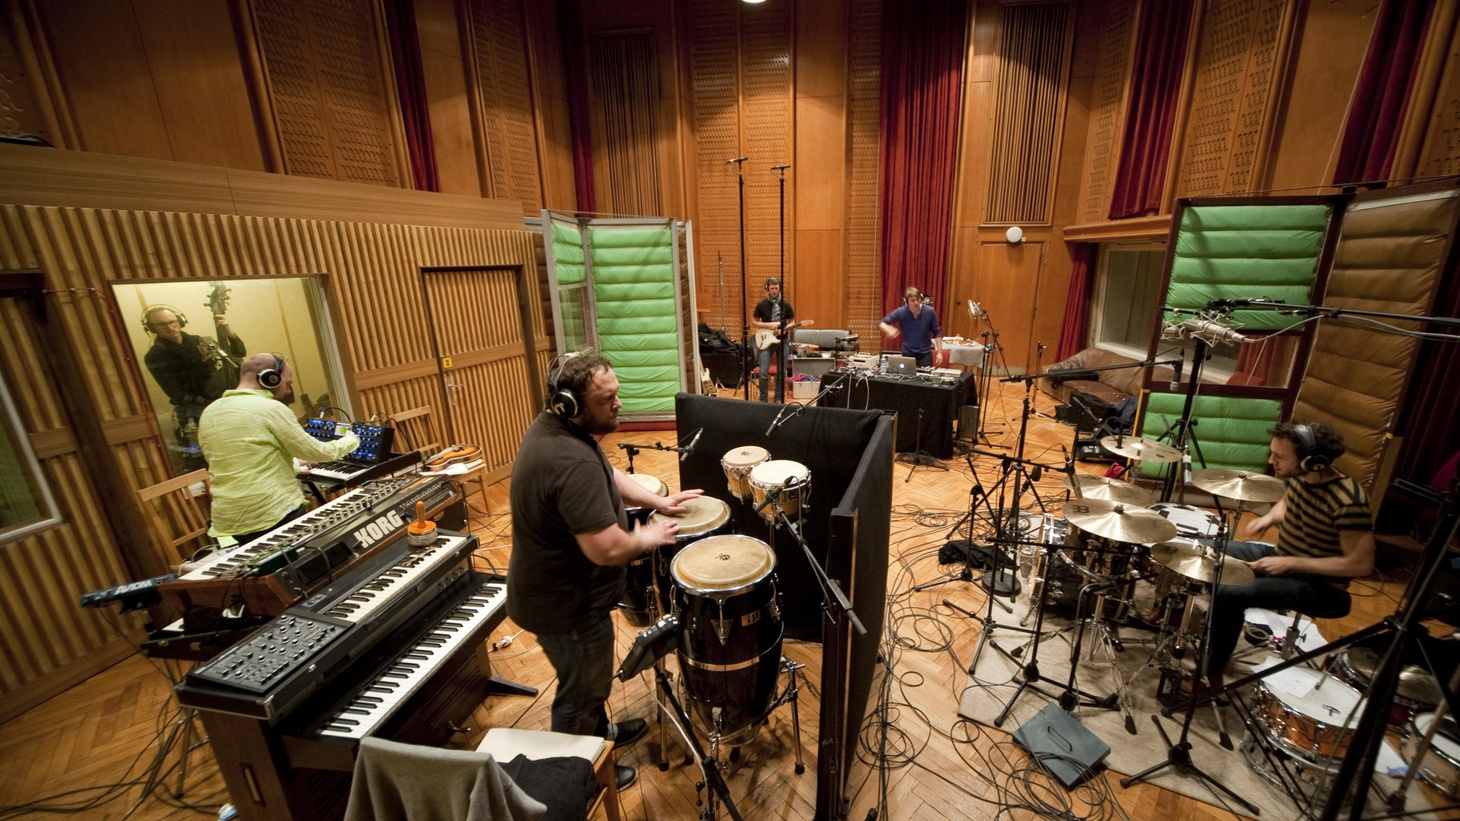 Berlin-based Jazzanova gathered their original seven-piece touring band and vocalist Paul Randolph to record their first live album.